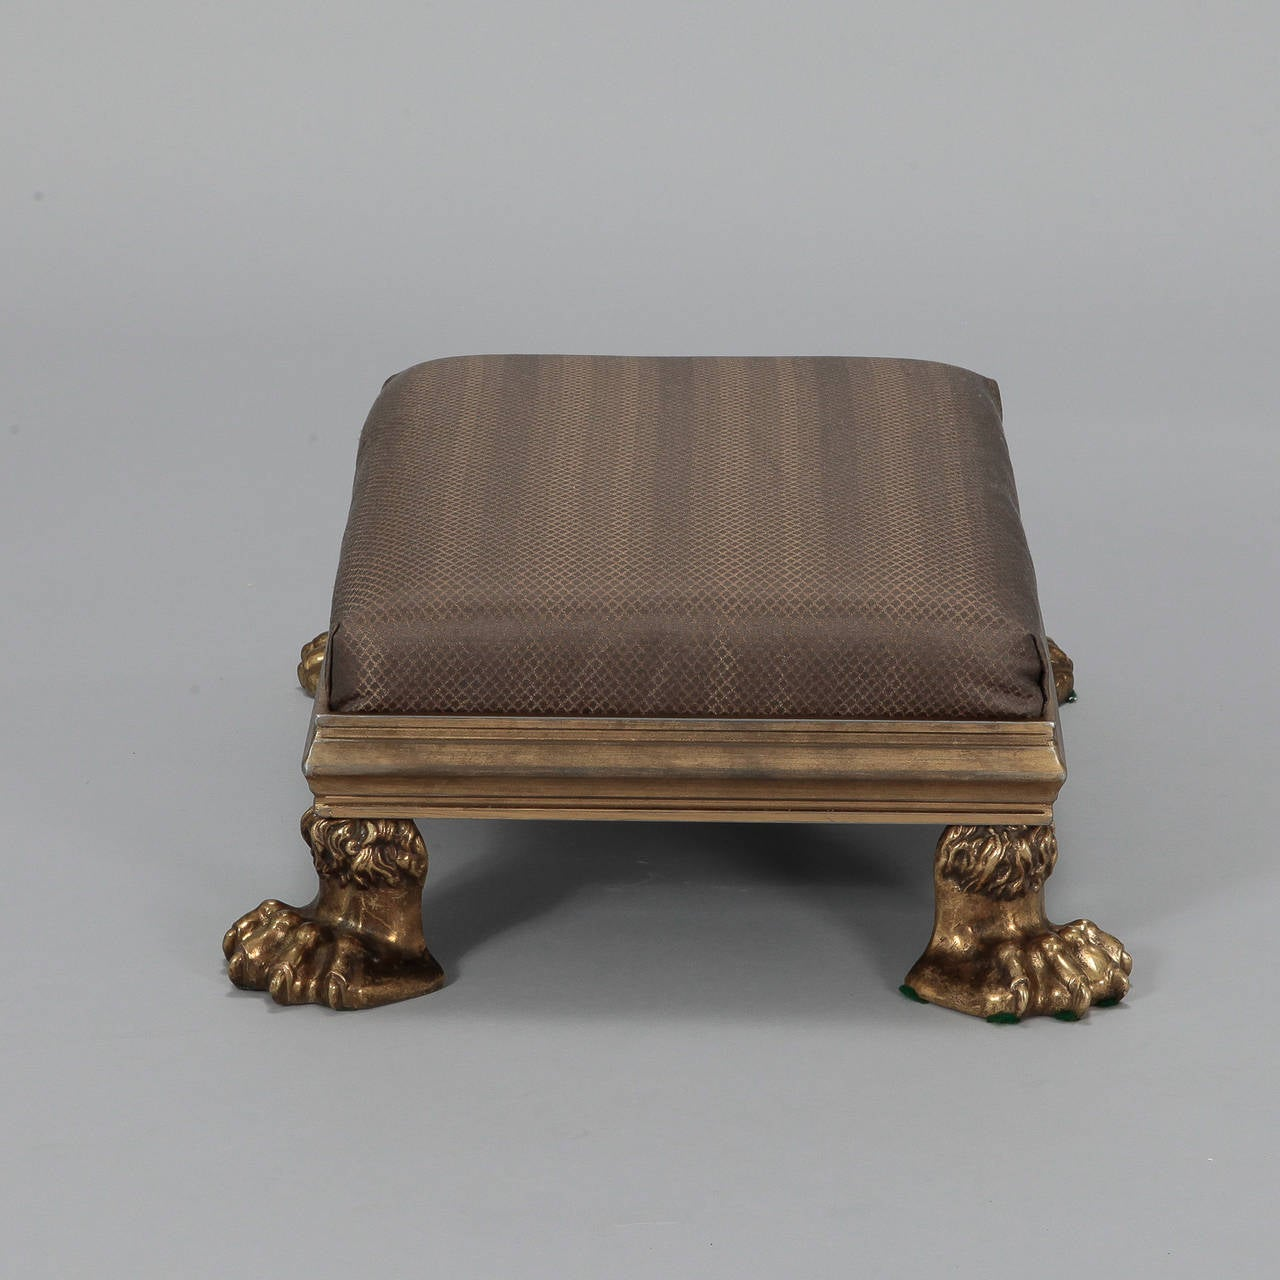 19th Century Brass Lion Claw Furniture Feet Made Into A